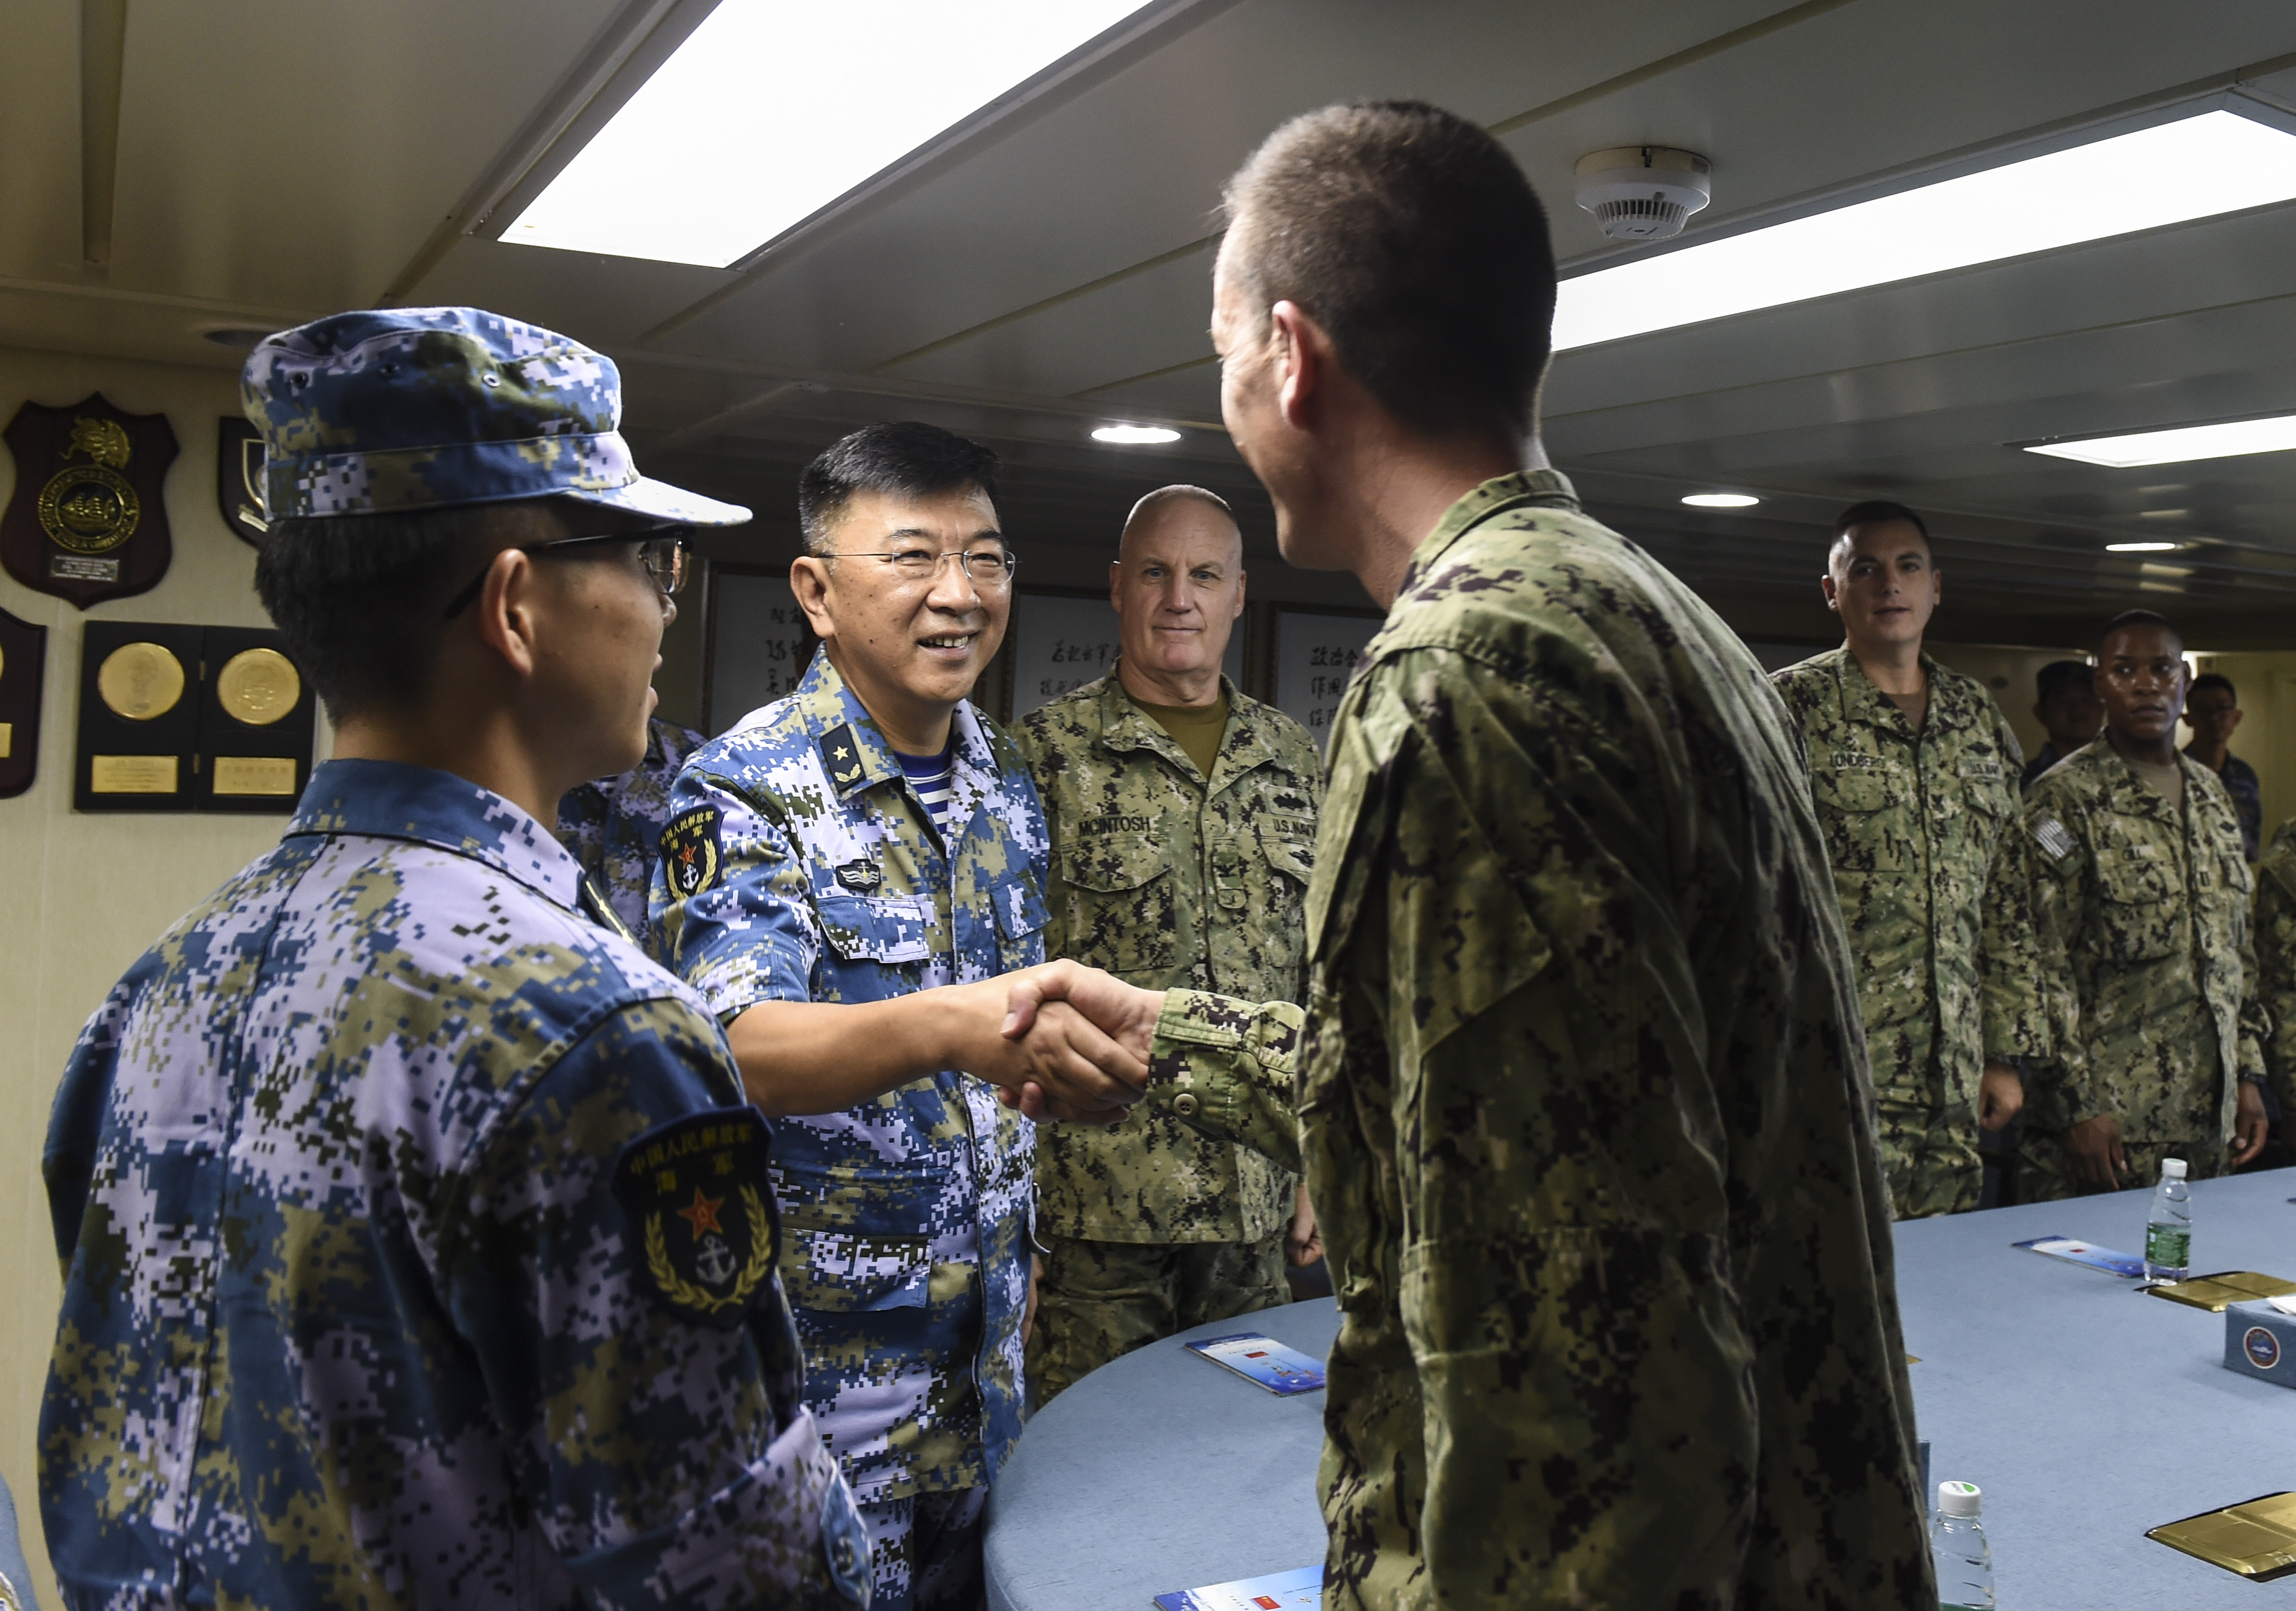 U.S. Navy Capt. Ian Branum, Combined Joint Task Force-Horn of Africa chief of staff shakes hands with Rear Admiral Guan Bolin, mission commander of China's hospital ship, Ark Peace, in the Port of Djibouti, August 28, 2017. Medical personnel from Camp Lemonnier visited the Ark Peace and received a tour from Chinese medical personnel to highlight the ship's capabilities. (U.S. Air Force photo by Staff Sgt. Eboni Prince)